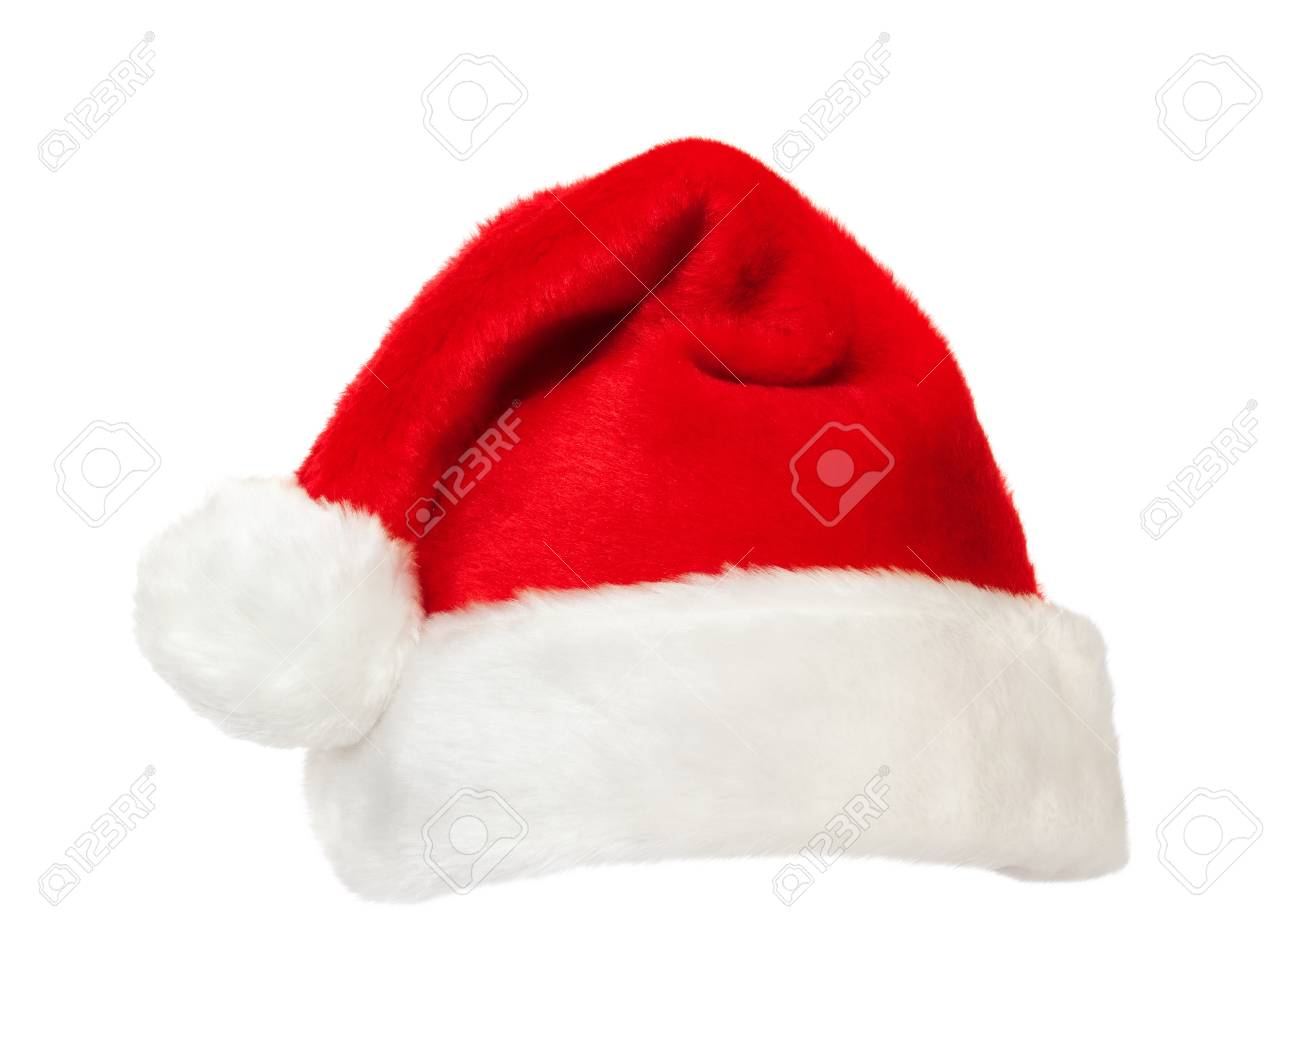 Isolated red Santa's hat - 11230965